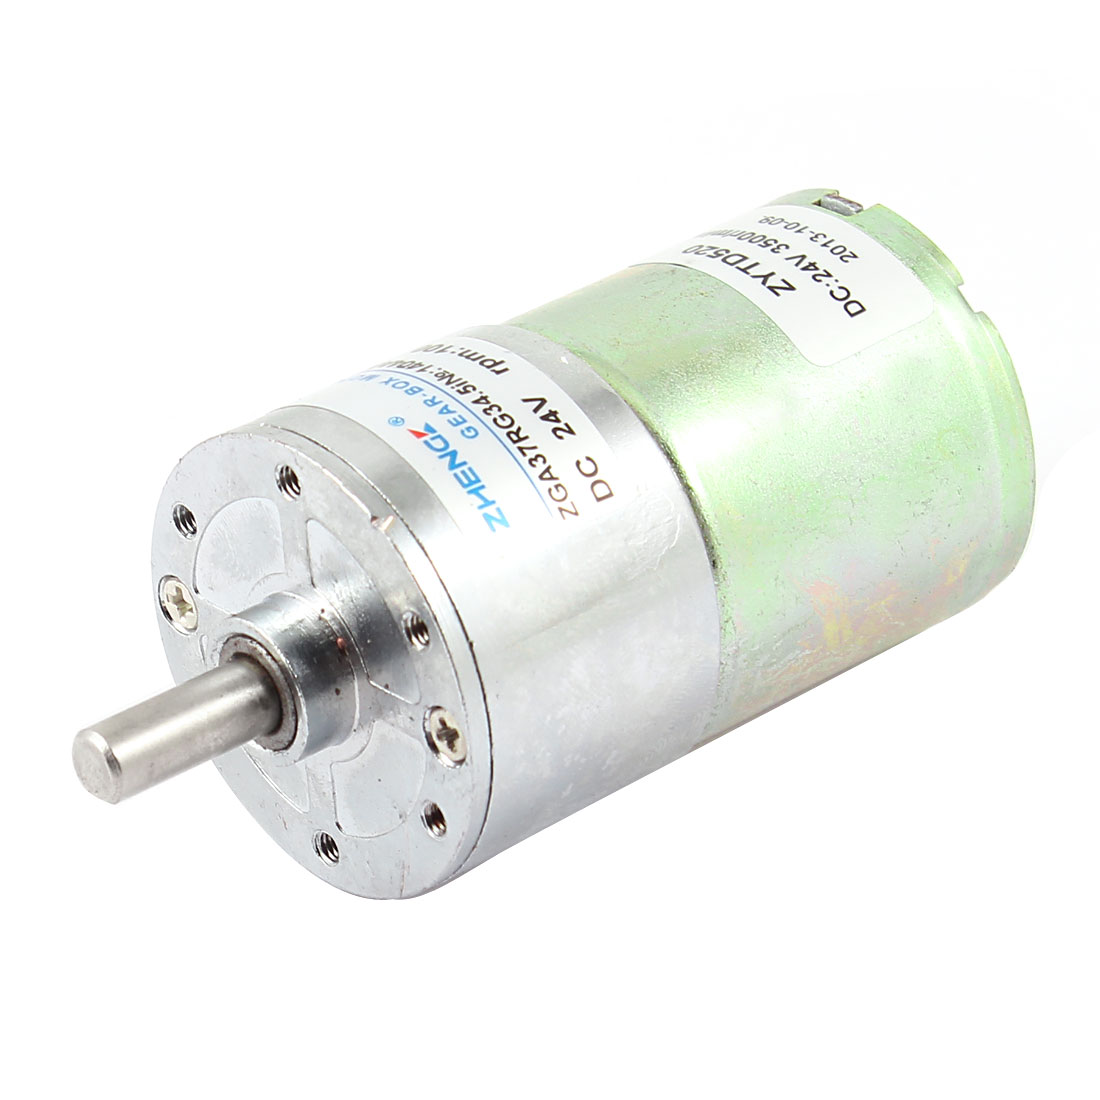 DC 24V 100RPM 6mm Shaft Dia Cylindrical Magnetic Electric Geared Box Motor